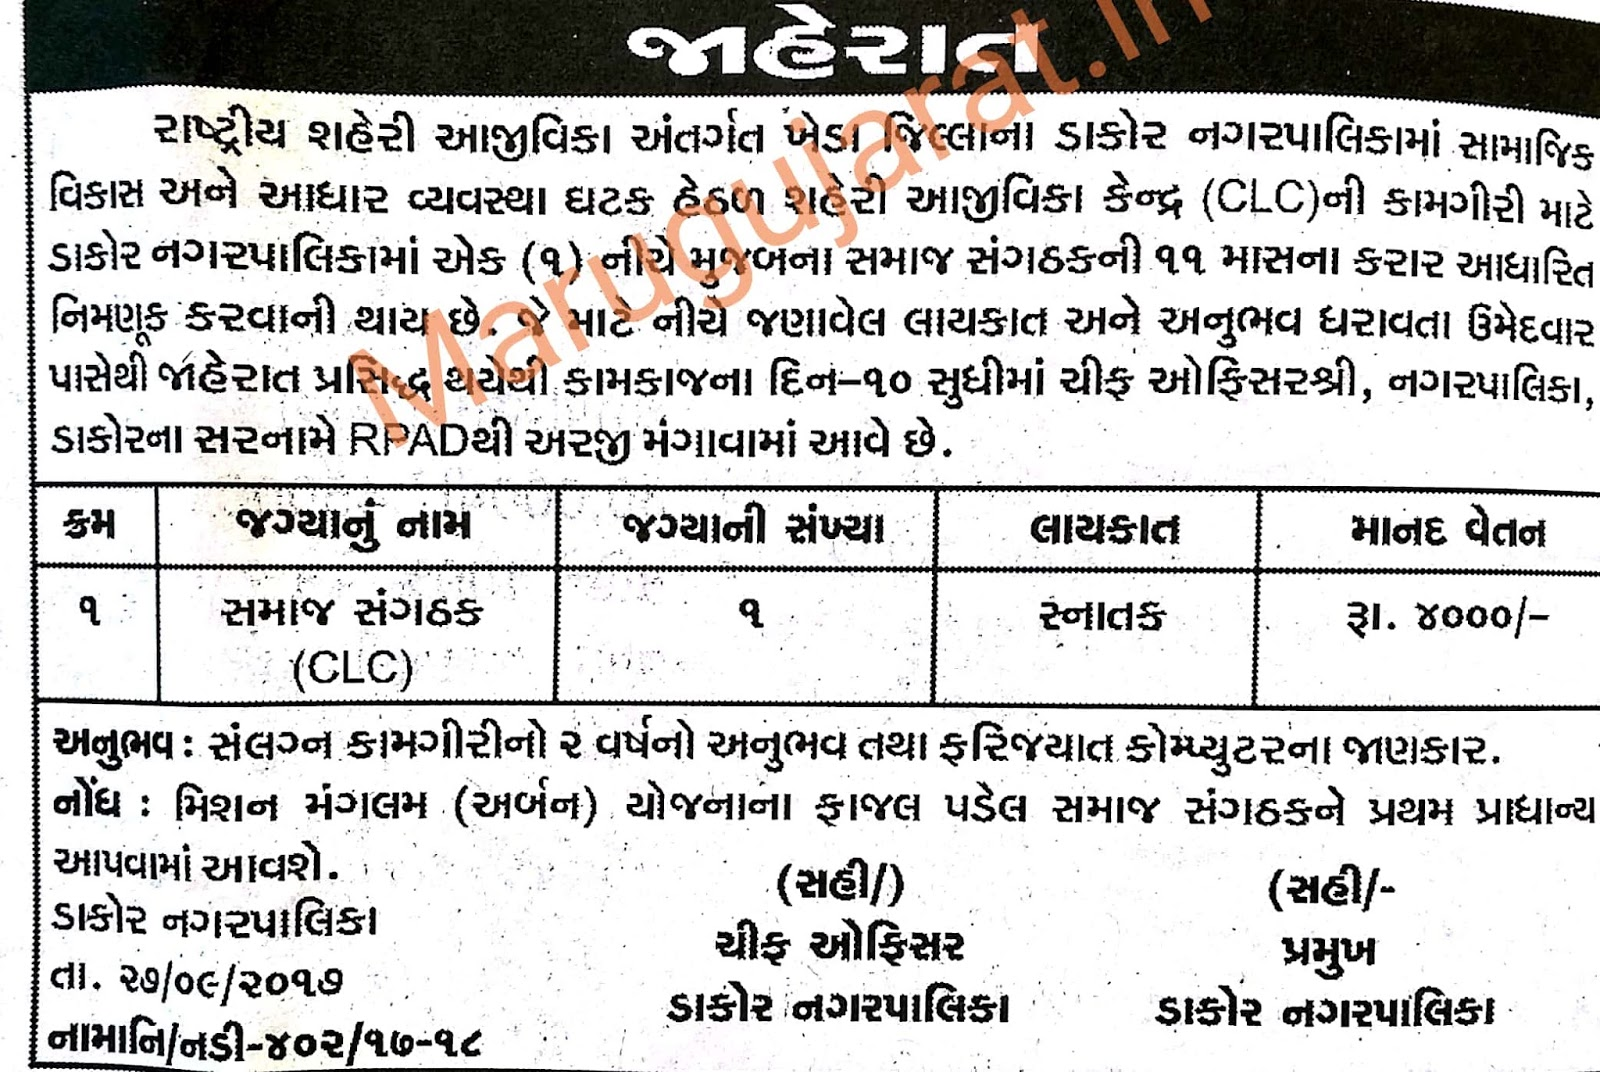 Dakor Nagarpalika Recruitment For Social Organizer Post